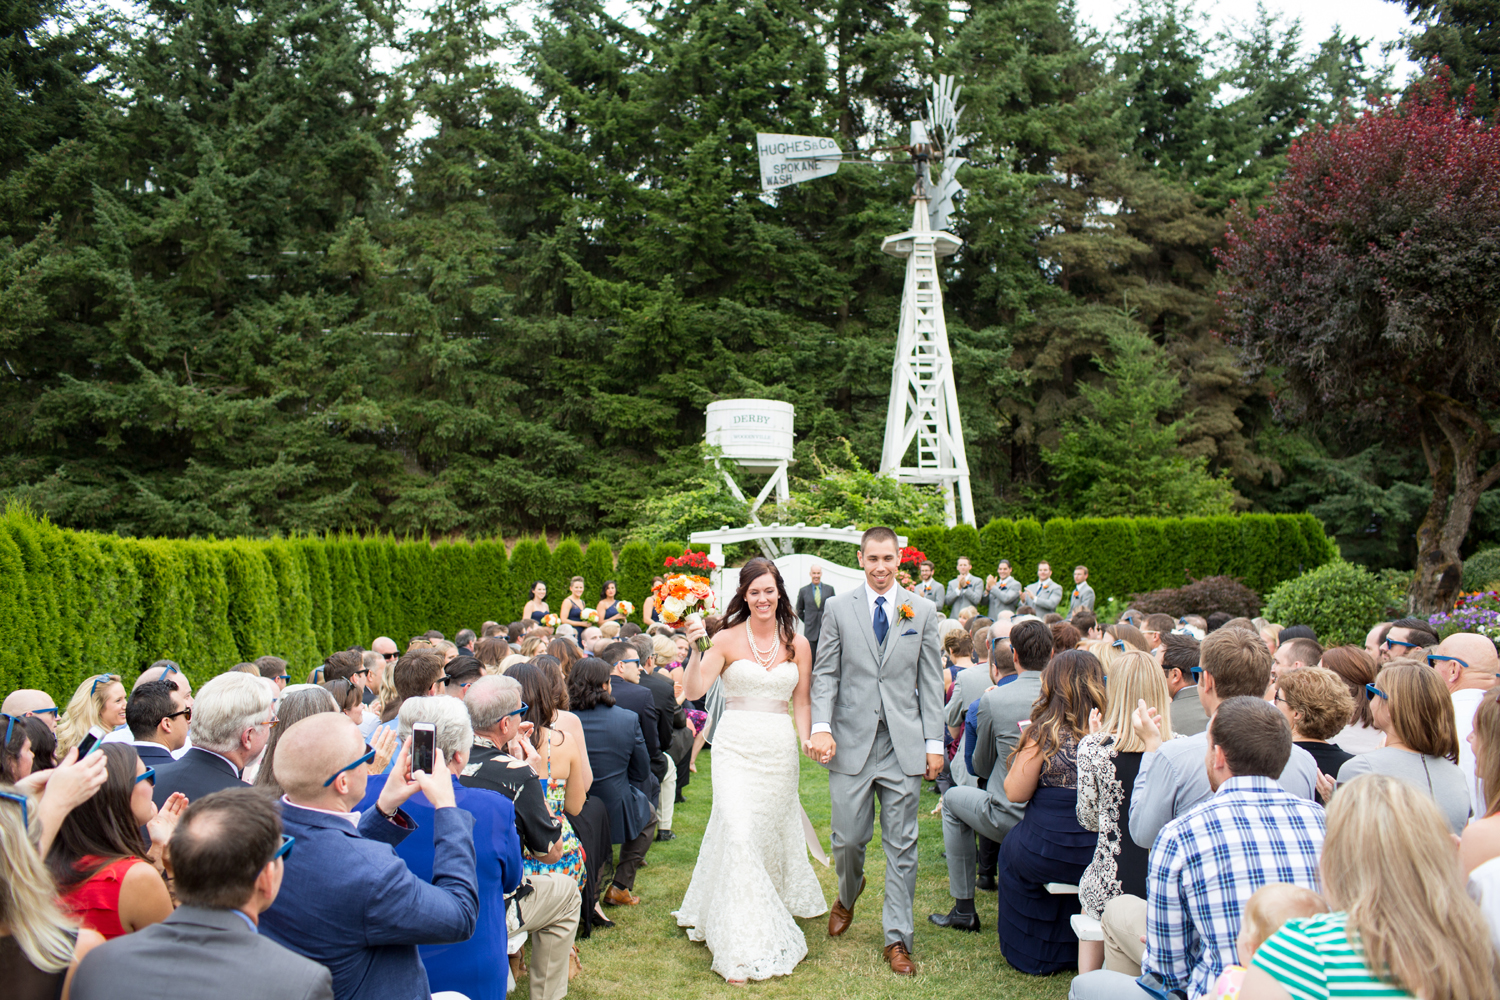 Bridalbliss.com | Seattle Wedding Celebration| Seattle Wedding Planning and Design | Brooks Scribner Photography